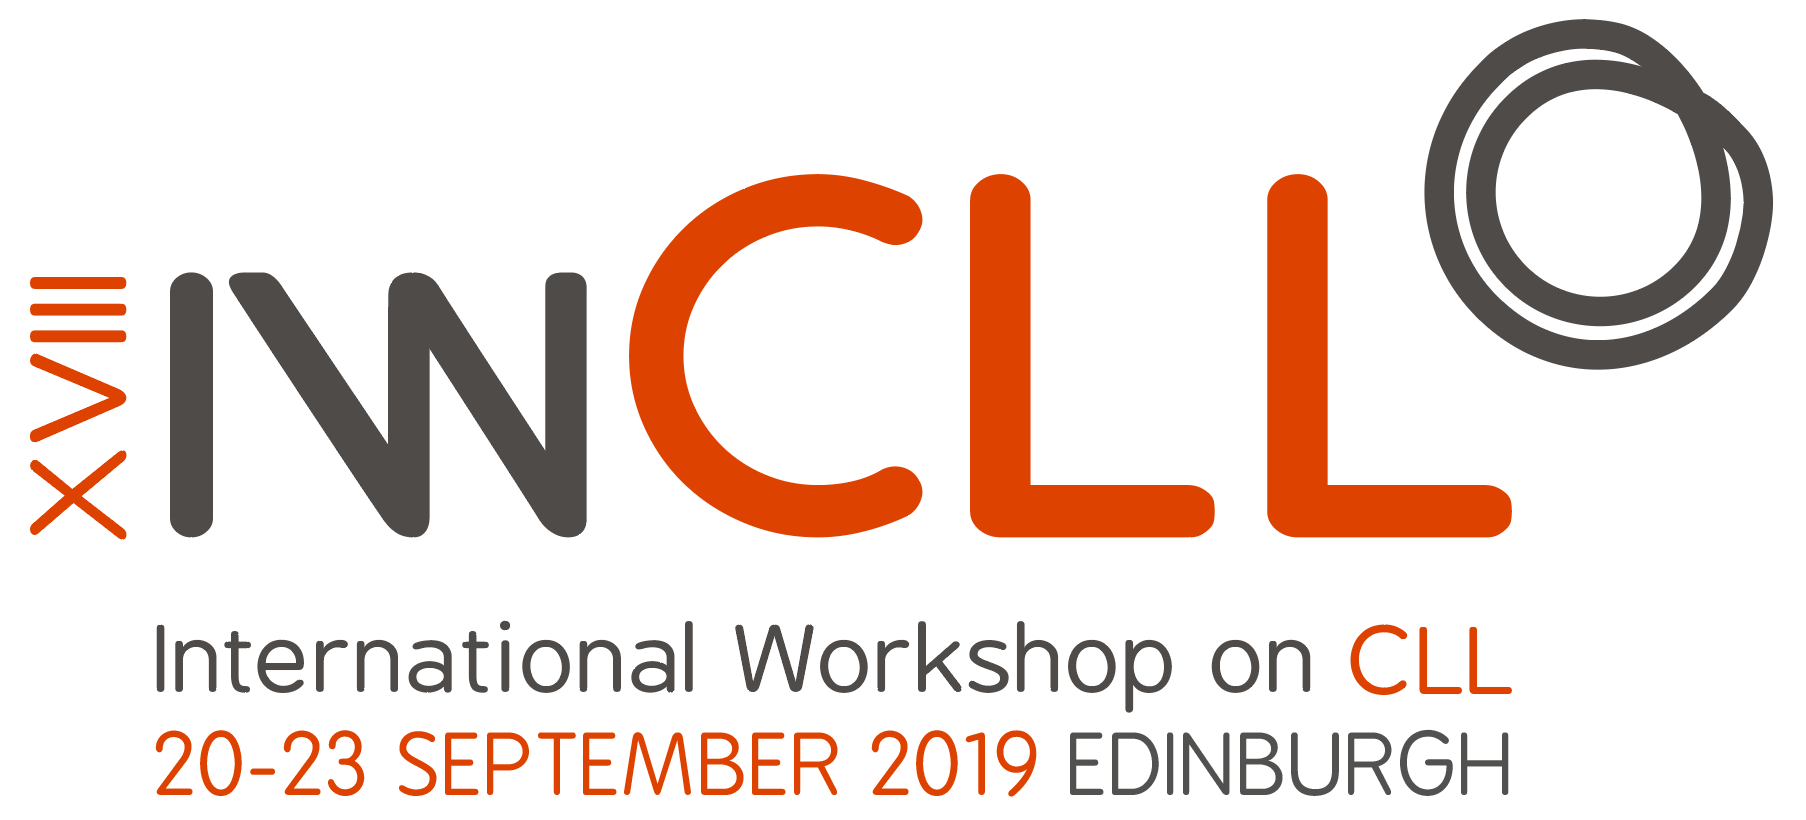 iwCLL Conference Logo Revised